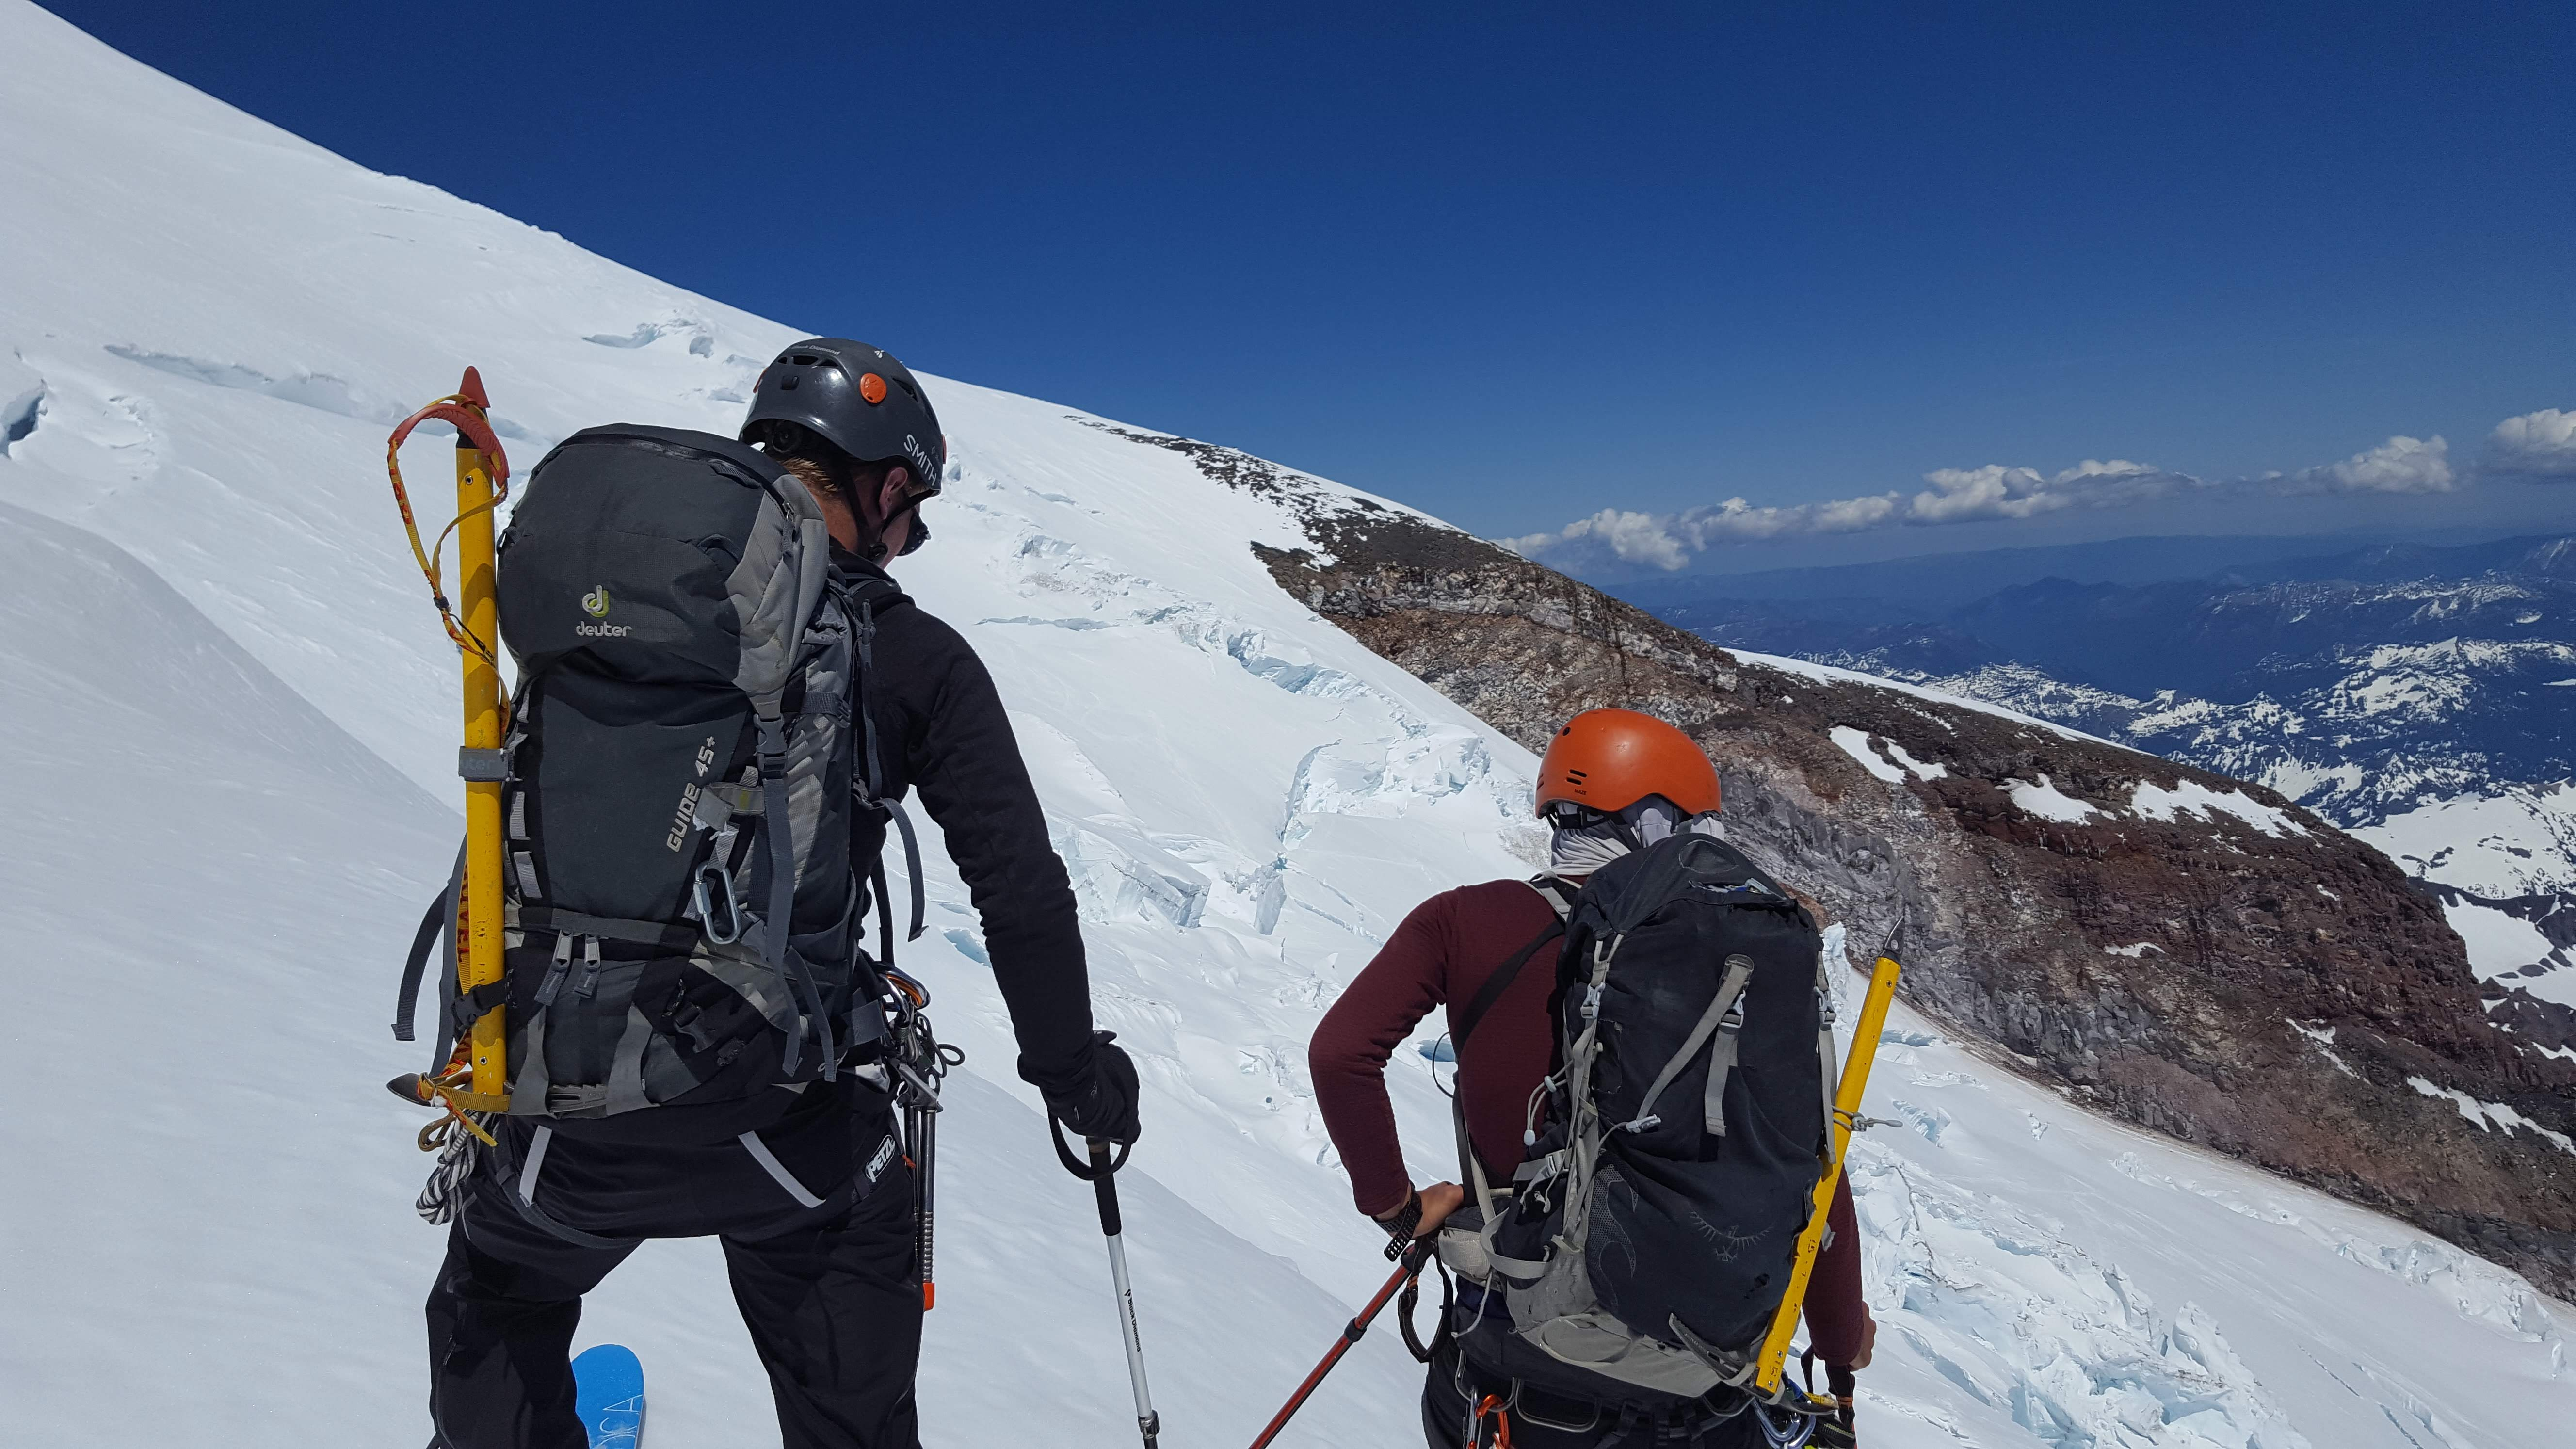 Justin and Tobias taking a look along the ridge as we evaluate our descent options. Photo cred: Duncan Pawson